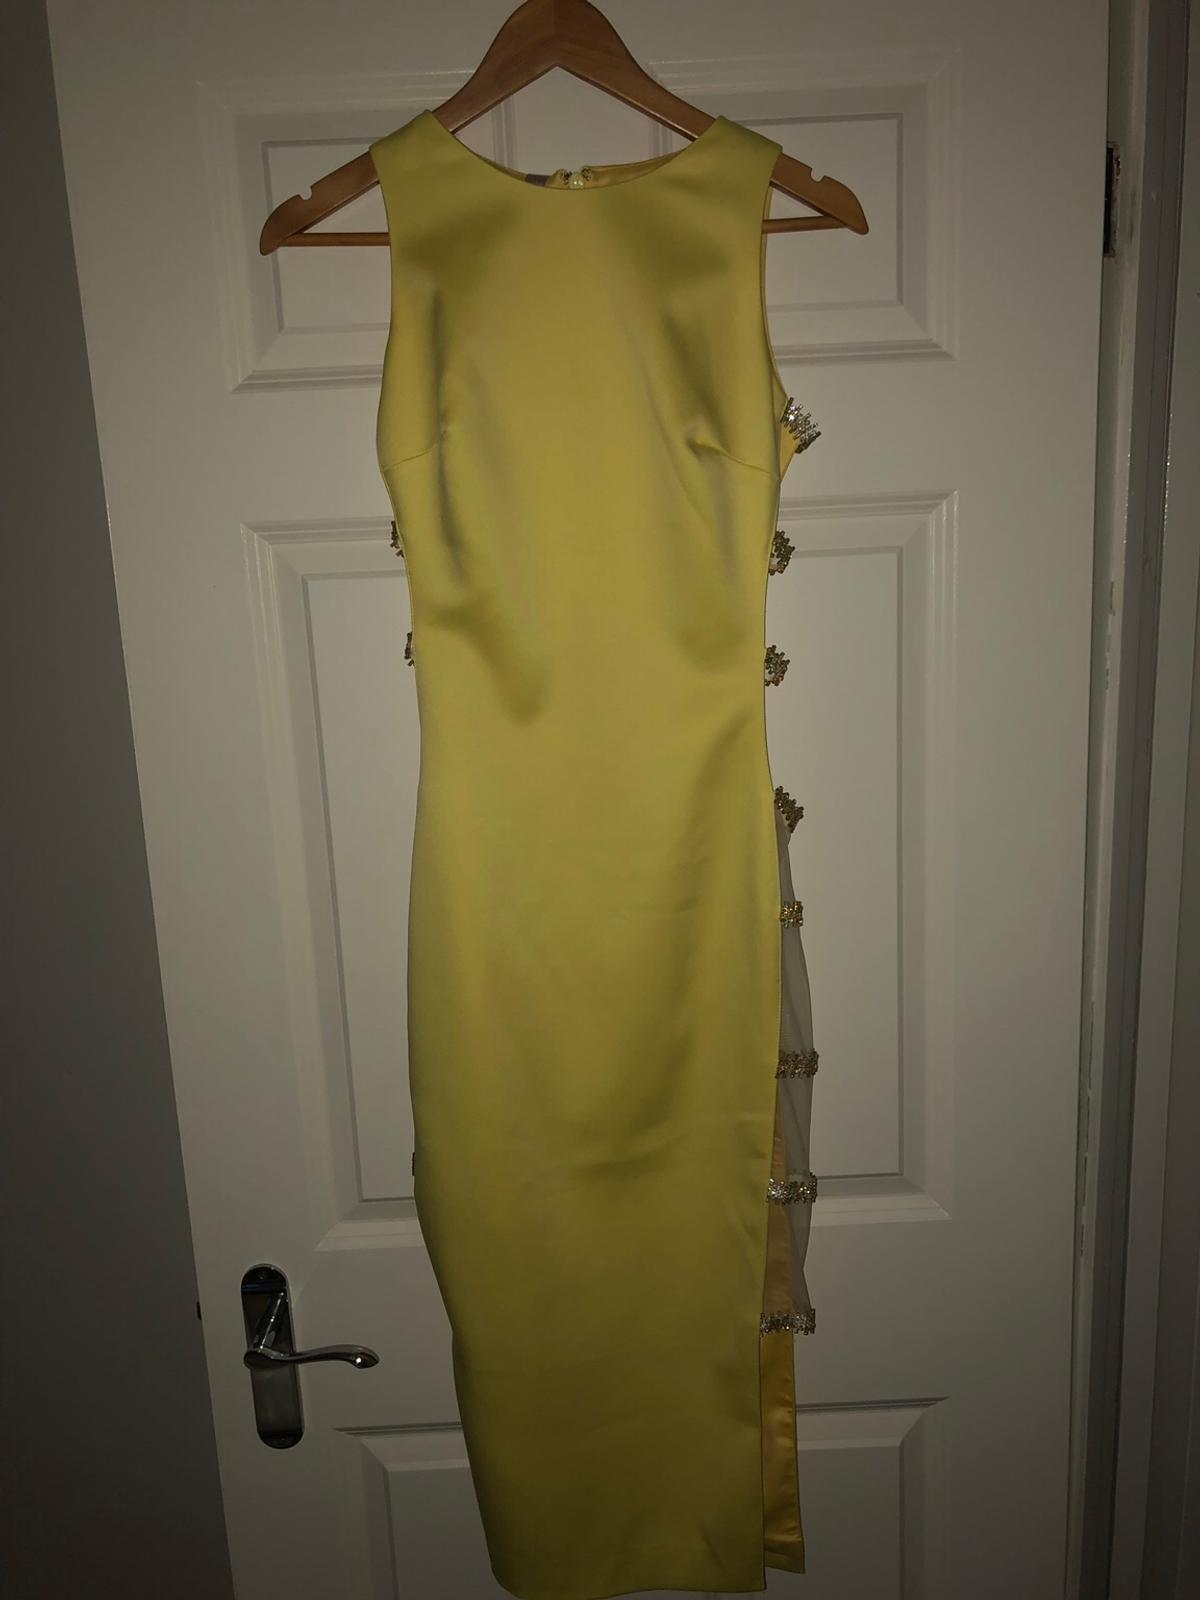 House of CB Yellow Dress. Never worn, still has its labels and original box. RRP £129